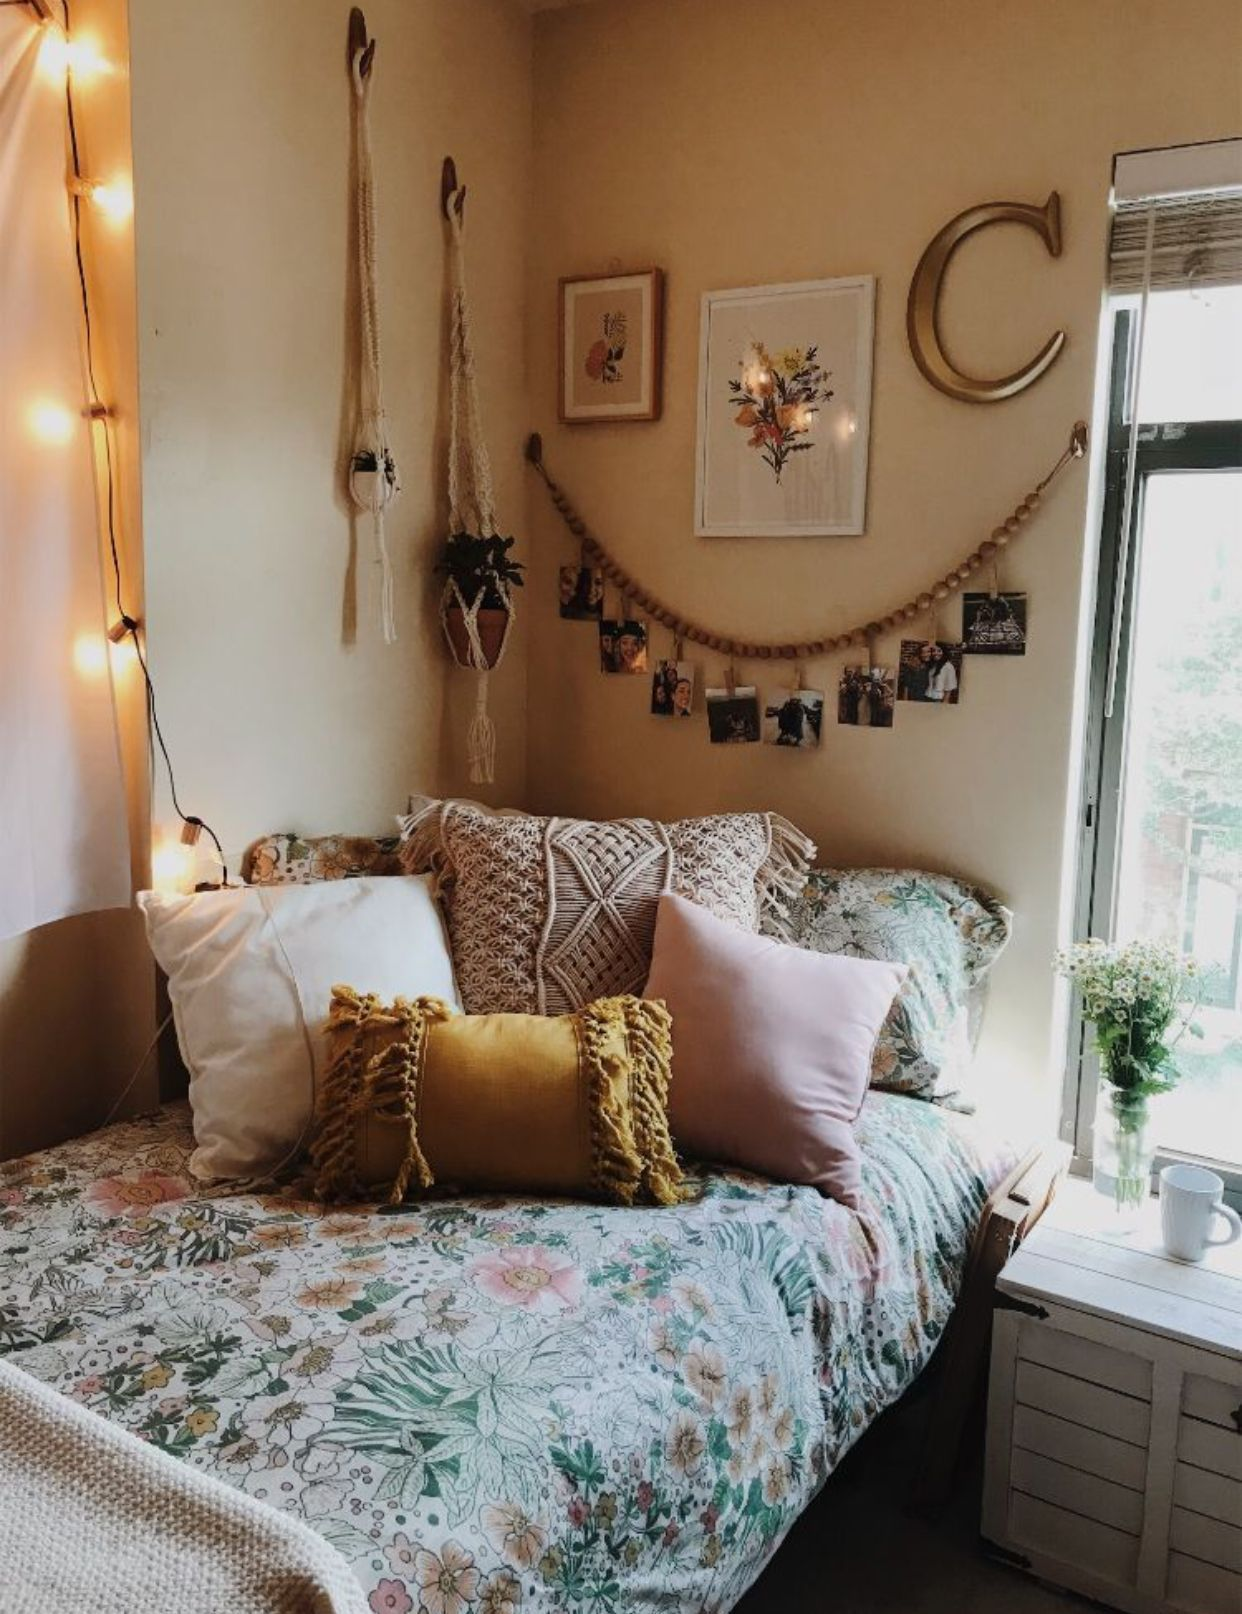 51 Relaxing and Romantic Bedroom Decorating Ideas for New ... on southwestern bedroom ideas, soothing bedroom color ideas, calm room ideas, bedroom paint color ideas, old hollywood bedroom ideas, calm bedroom color,